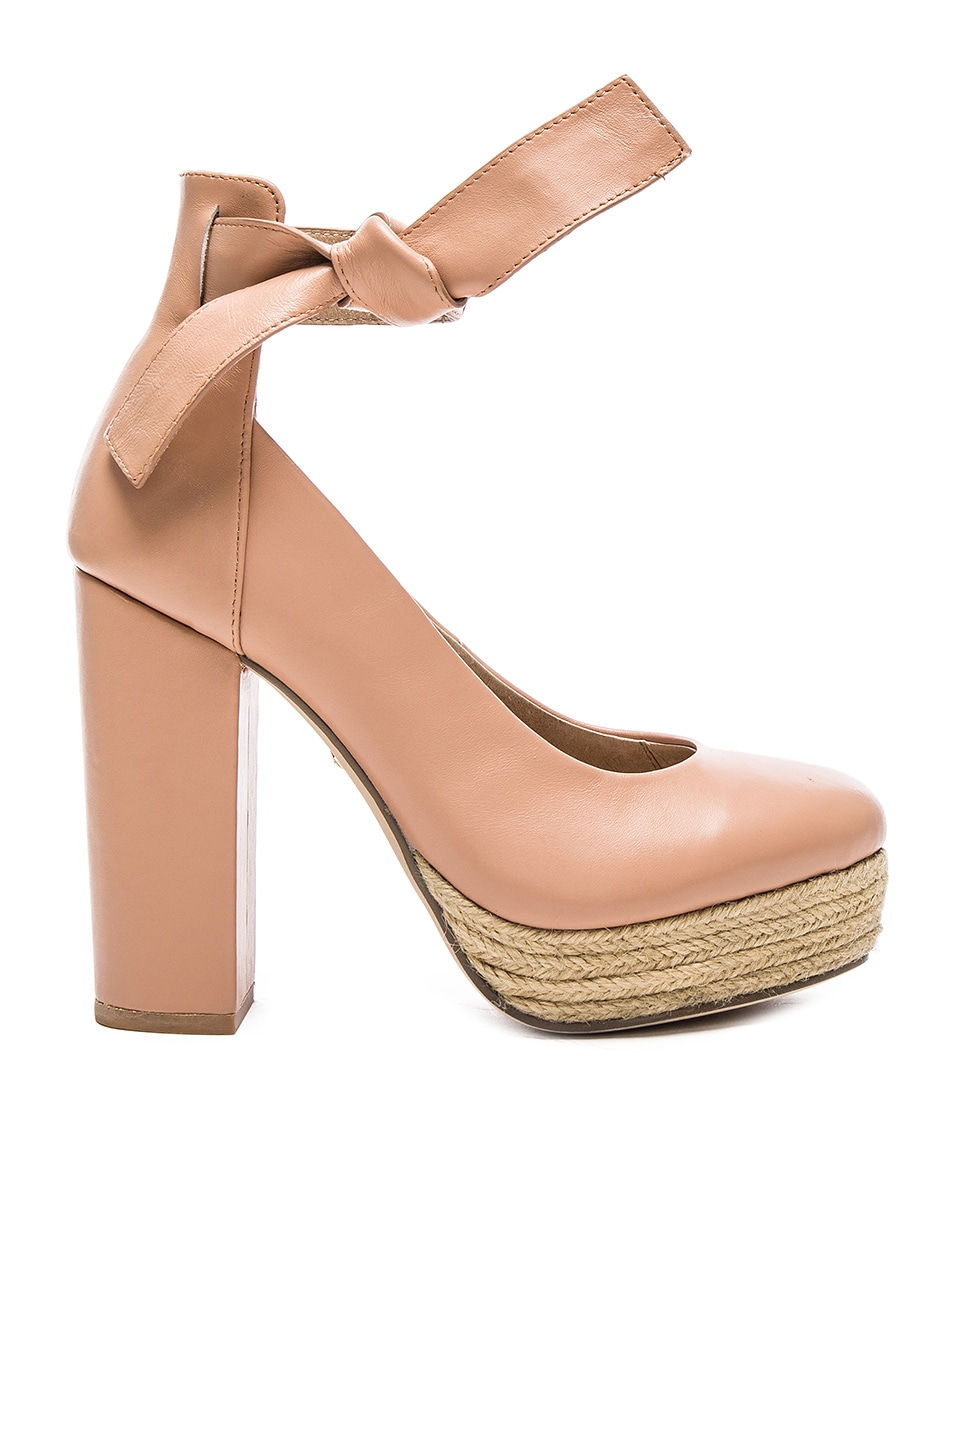 RAYE x For Love & Lemons Harper Heel in Nude Leather